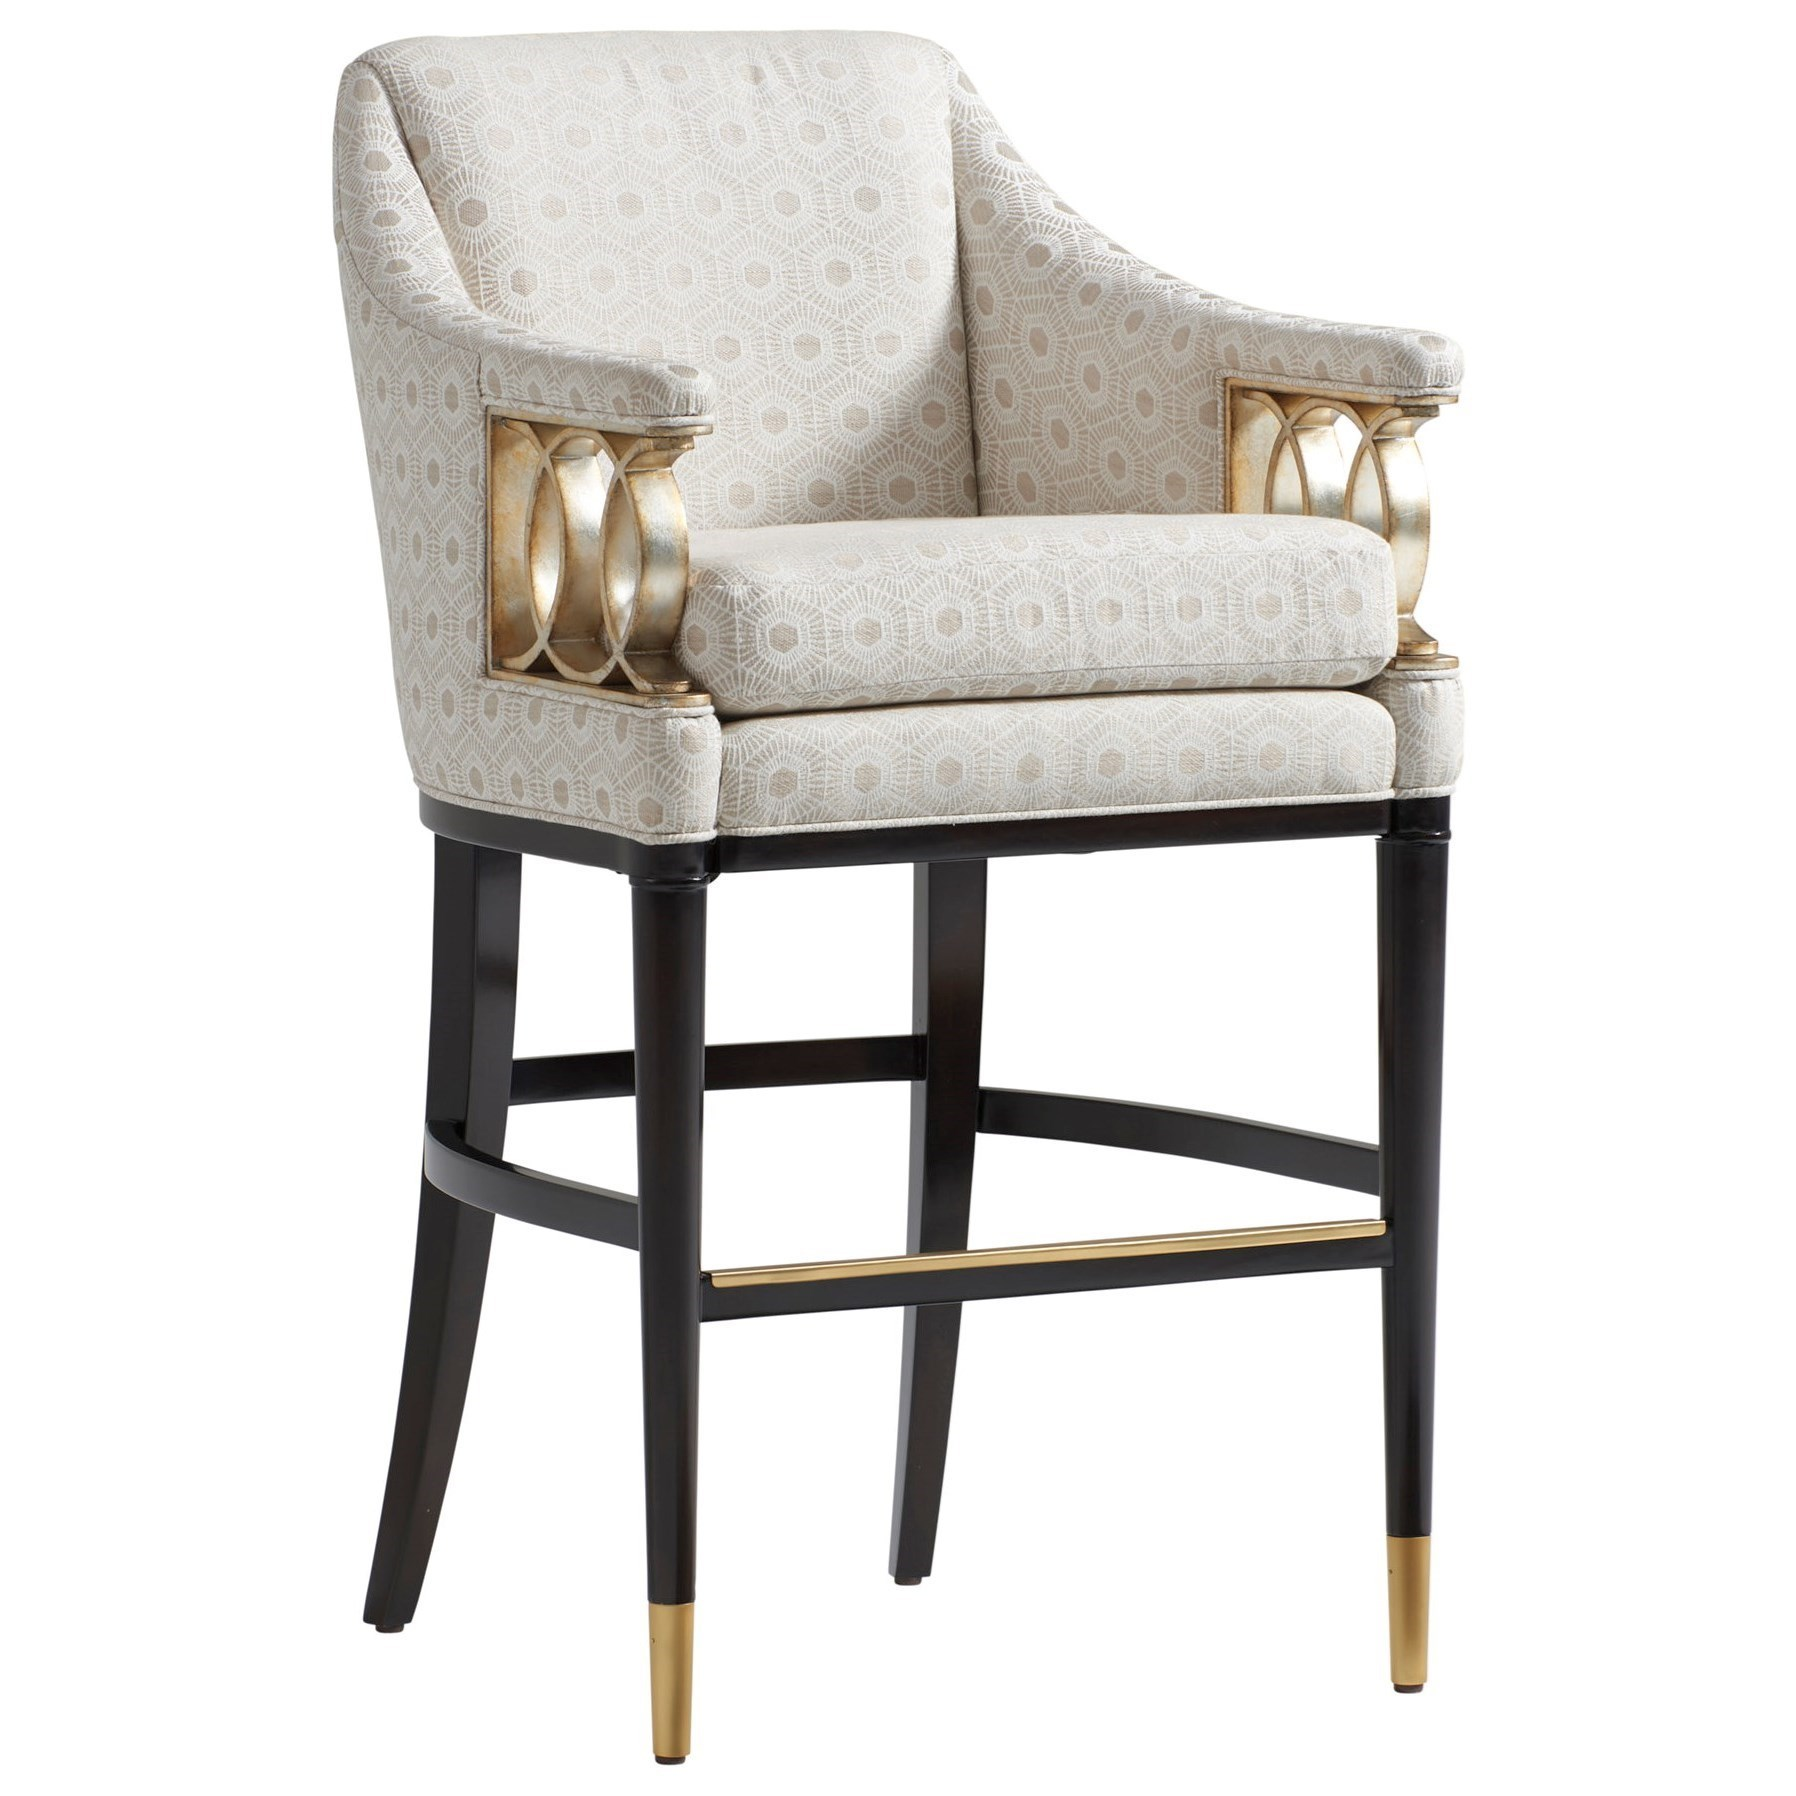 Upholstered Bar Chairs Lexington Carlyle Hemsley Upholstered Bar Stool With Burnished